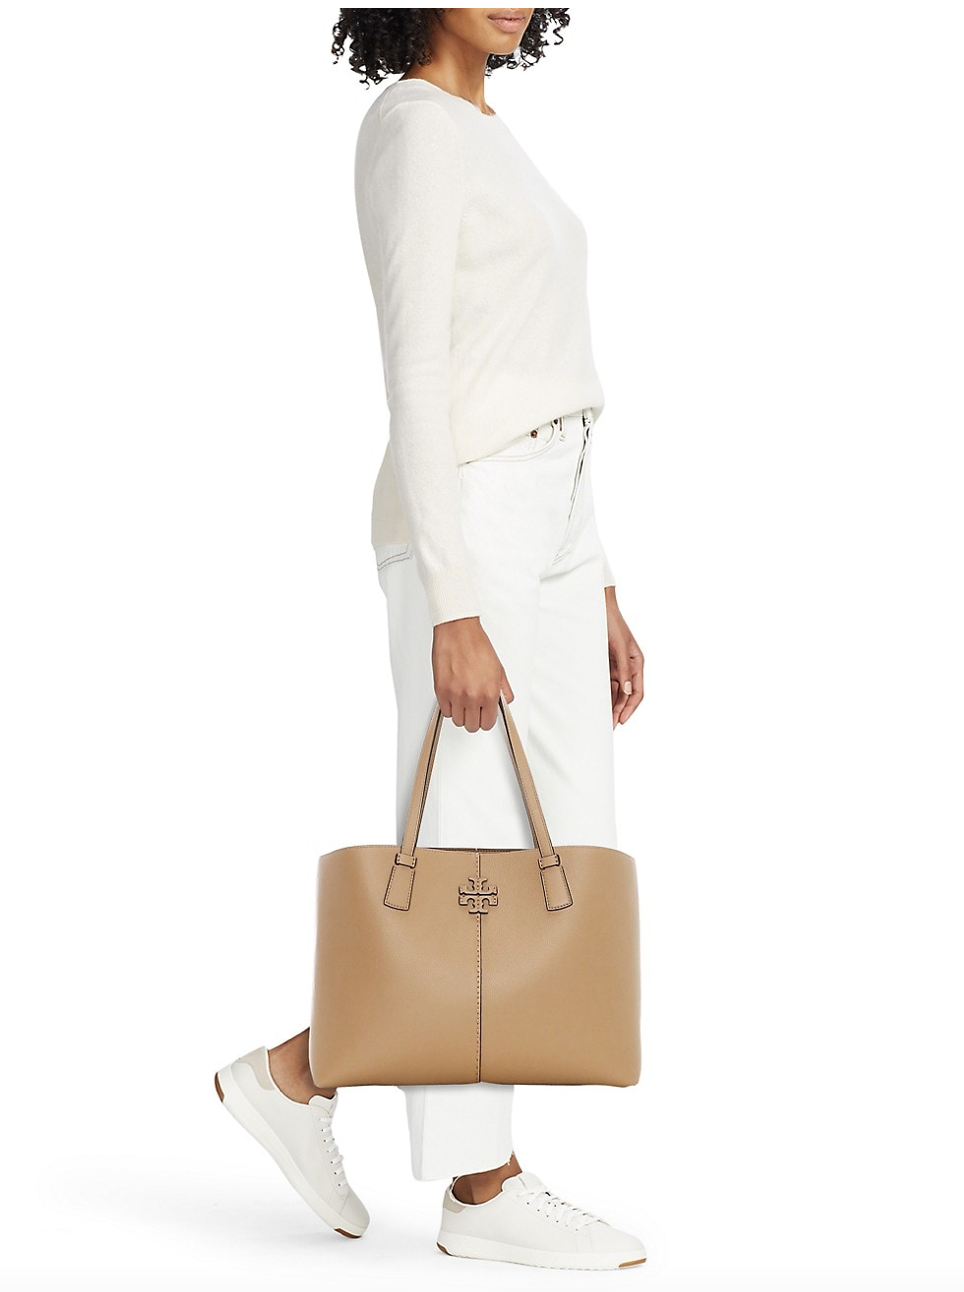 Saks Fifth Avenue: Up to 75% off sale styles.